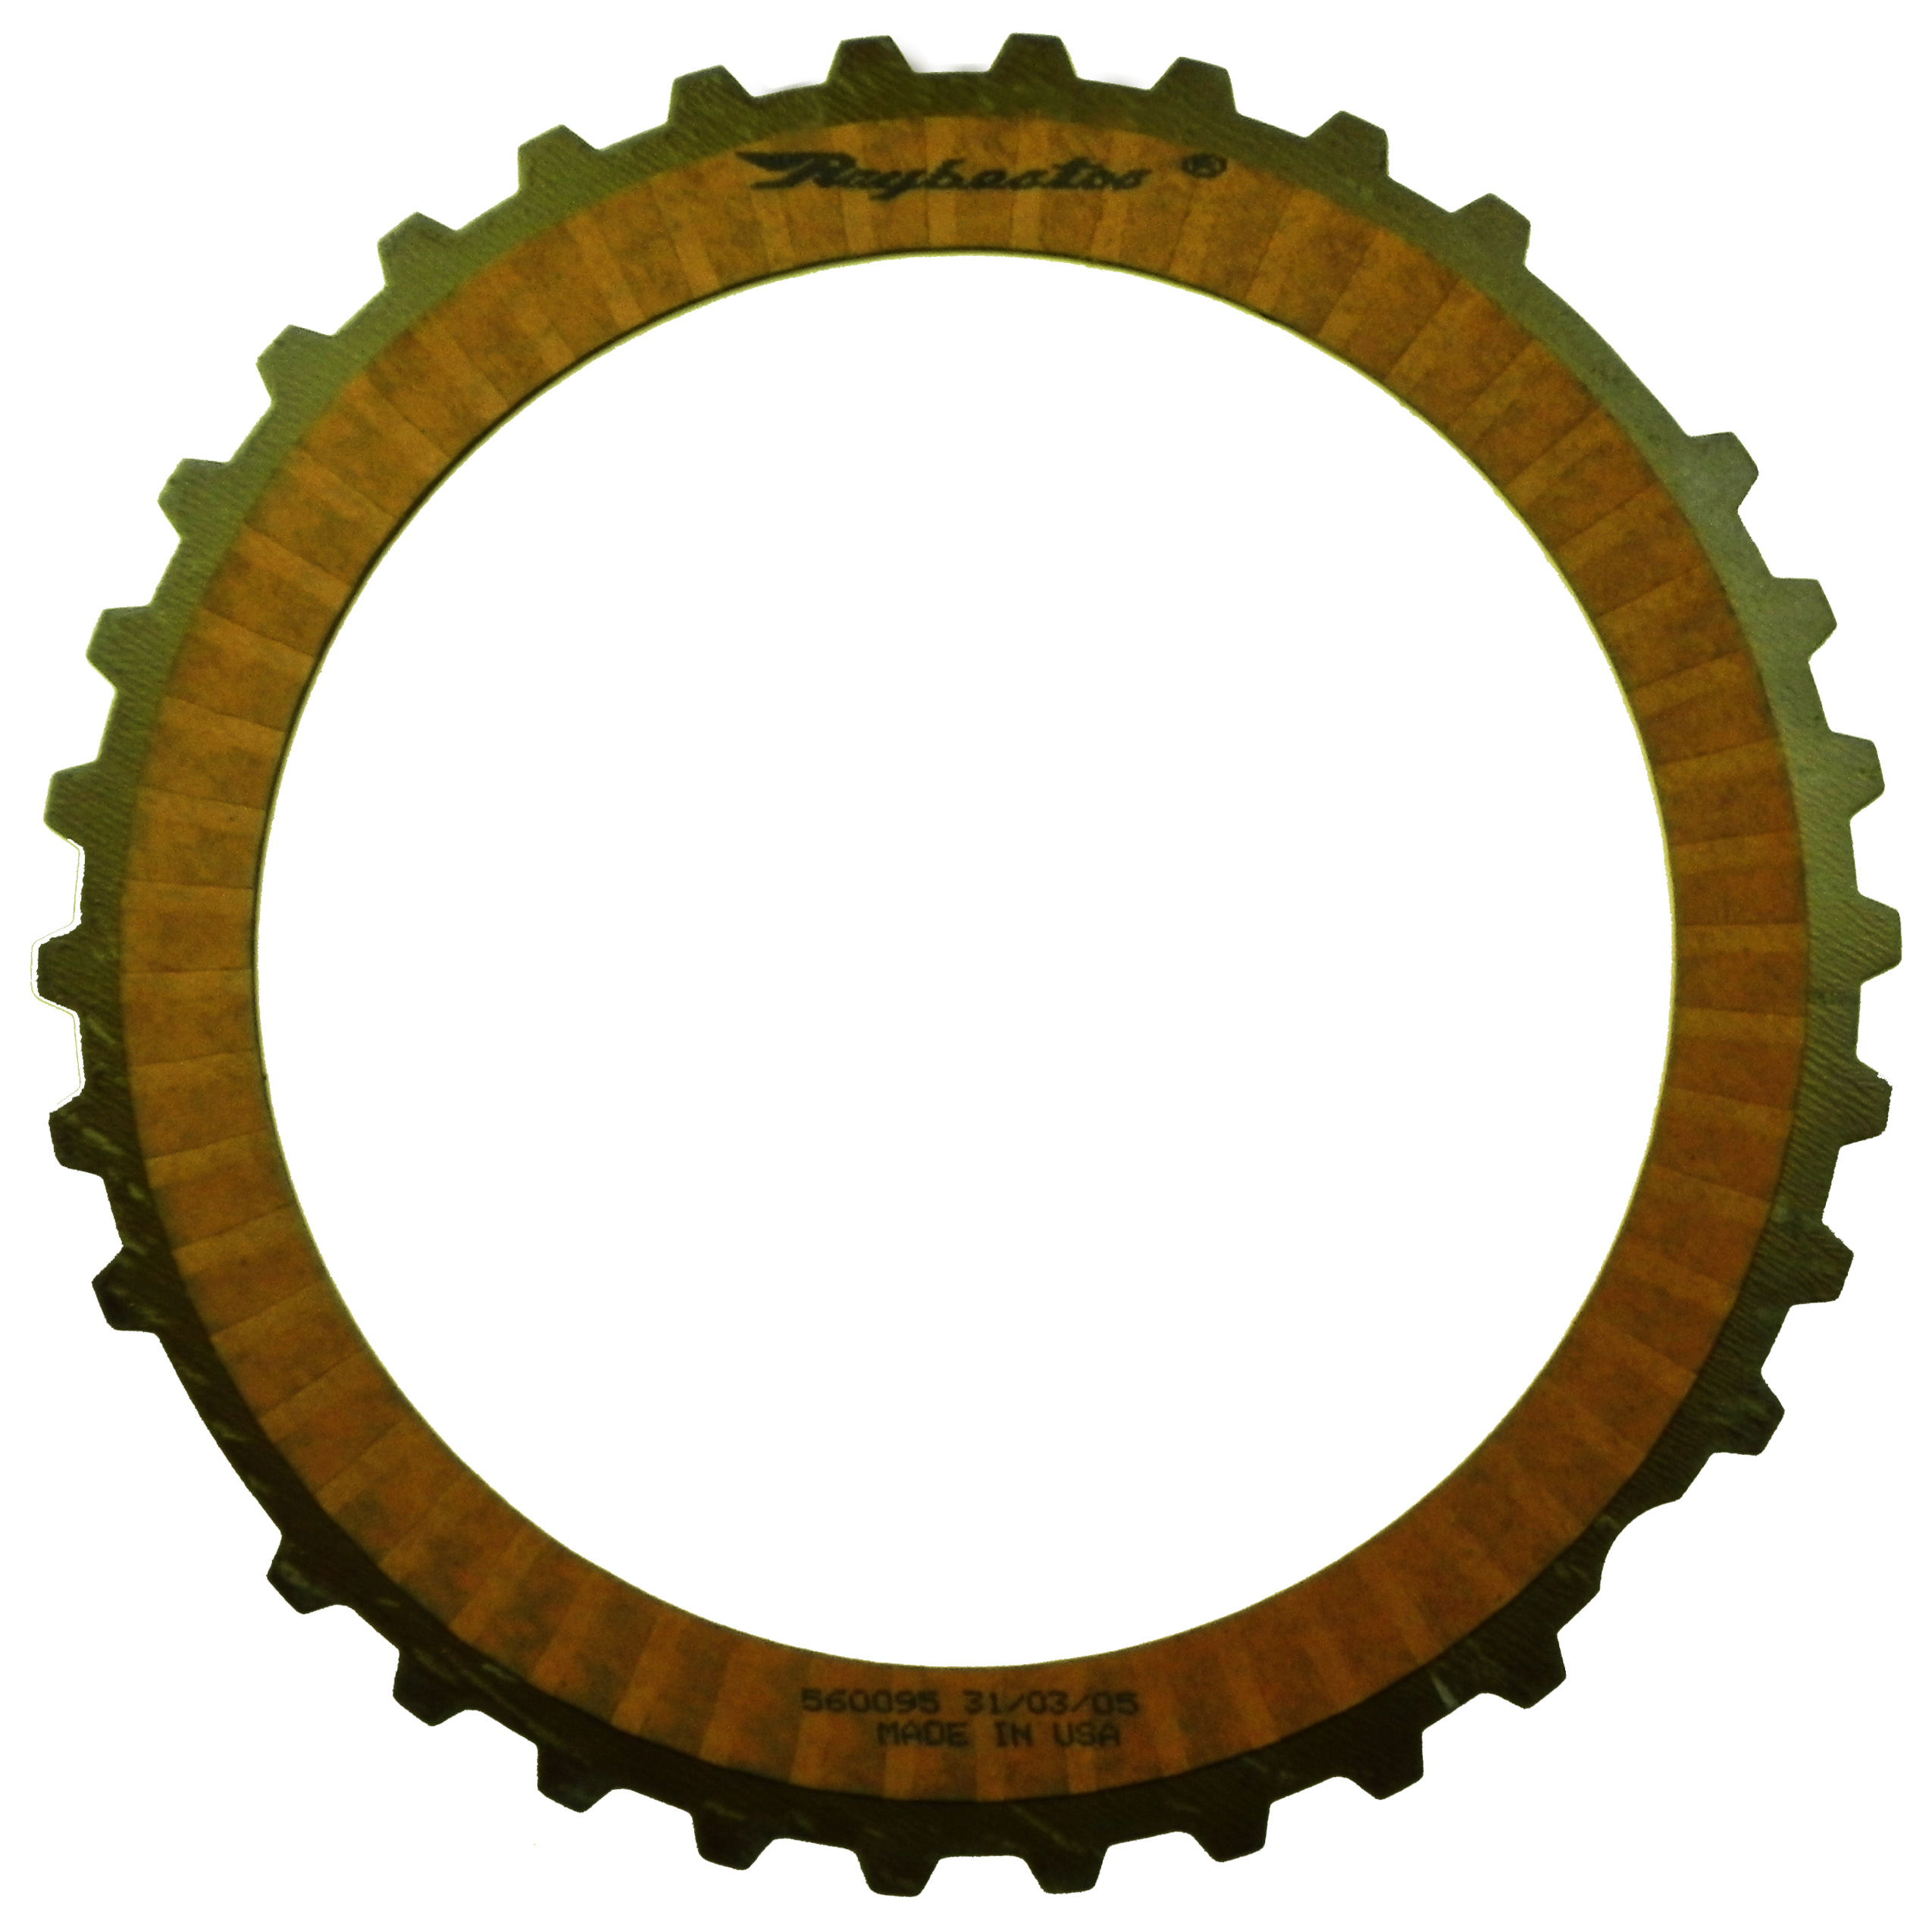 R560095   1999-ON Friction Clutch Plate OE Replacement Transfer Case 4405 OD Spline, Single Sided